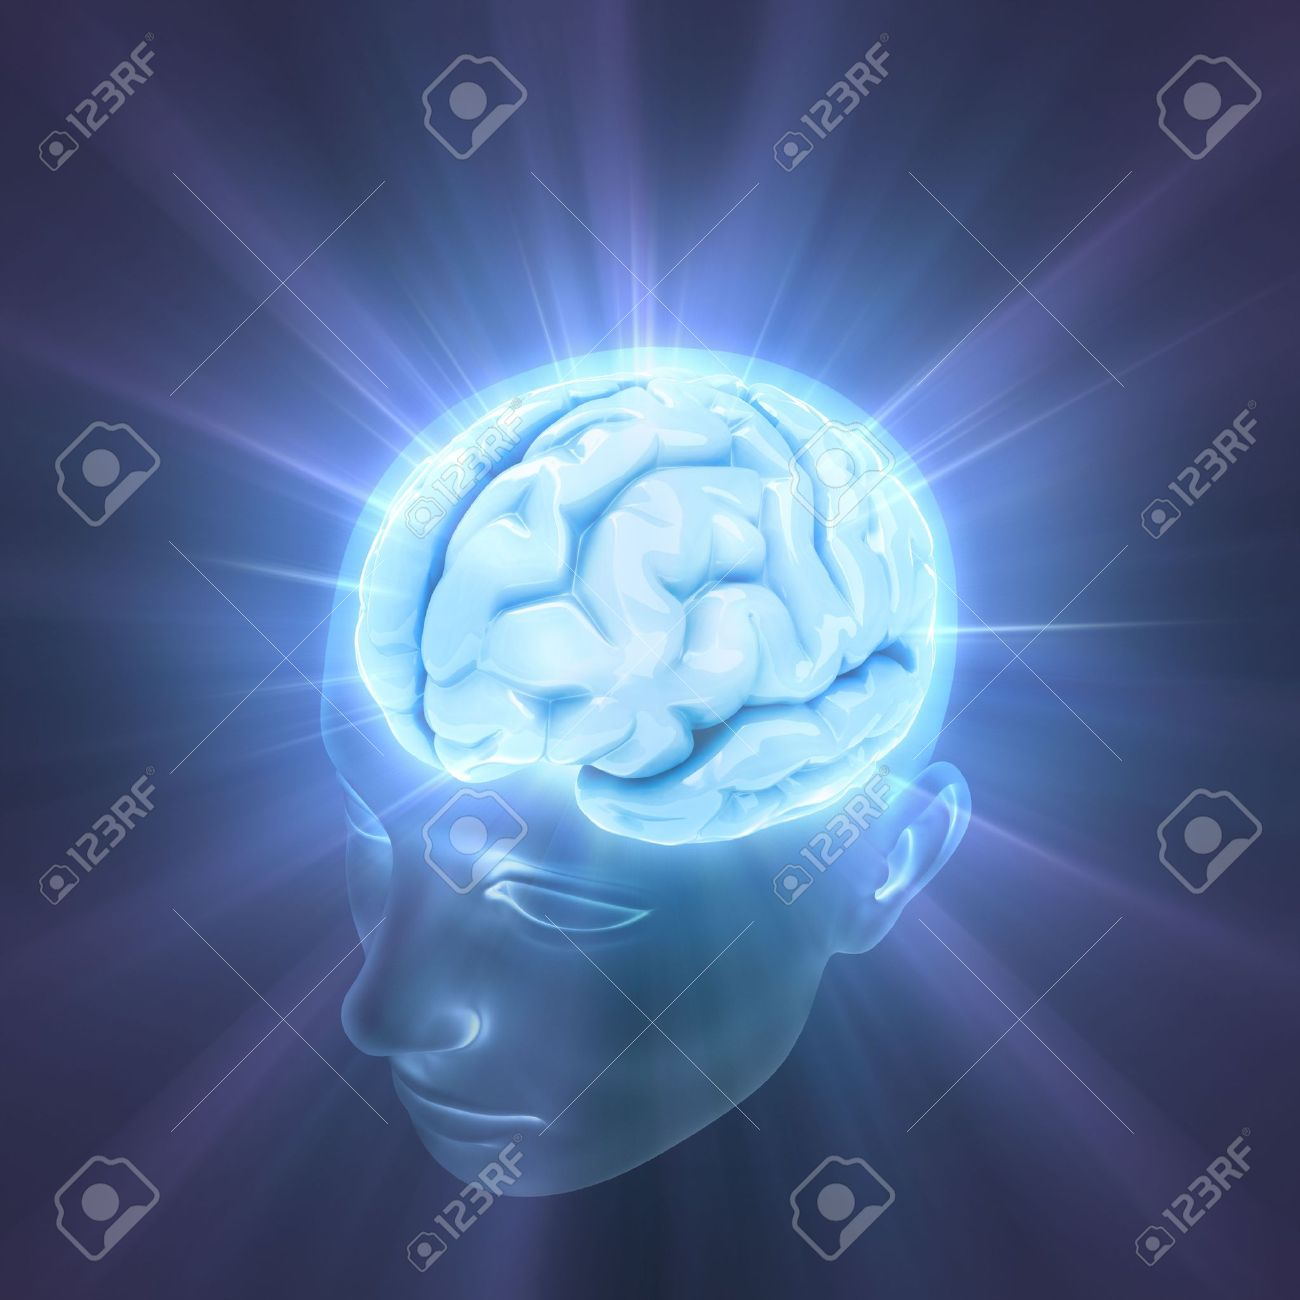 Head illuminated by the energy of the brain. Concept of thinking, the power of mind. Stock Photo - 3582150